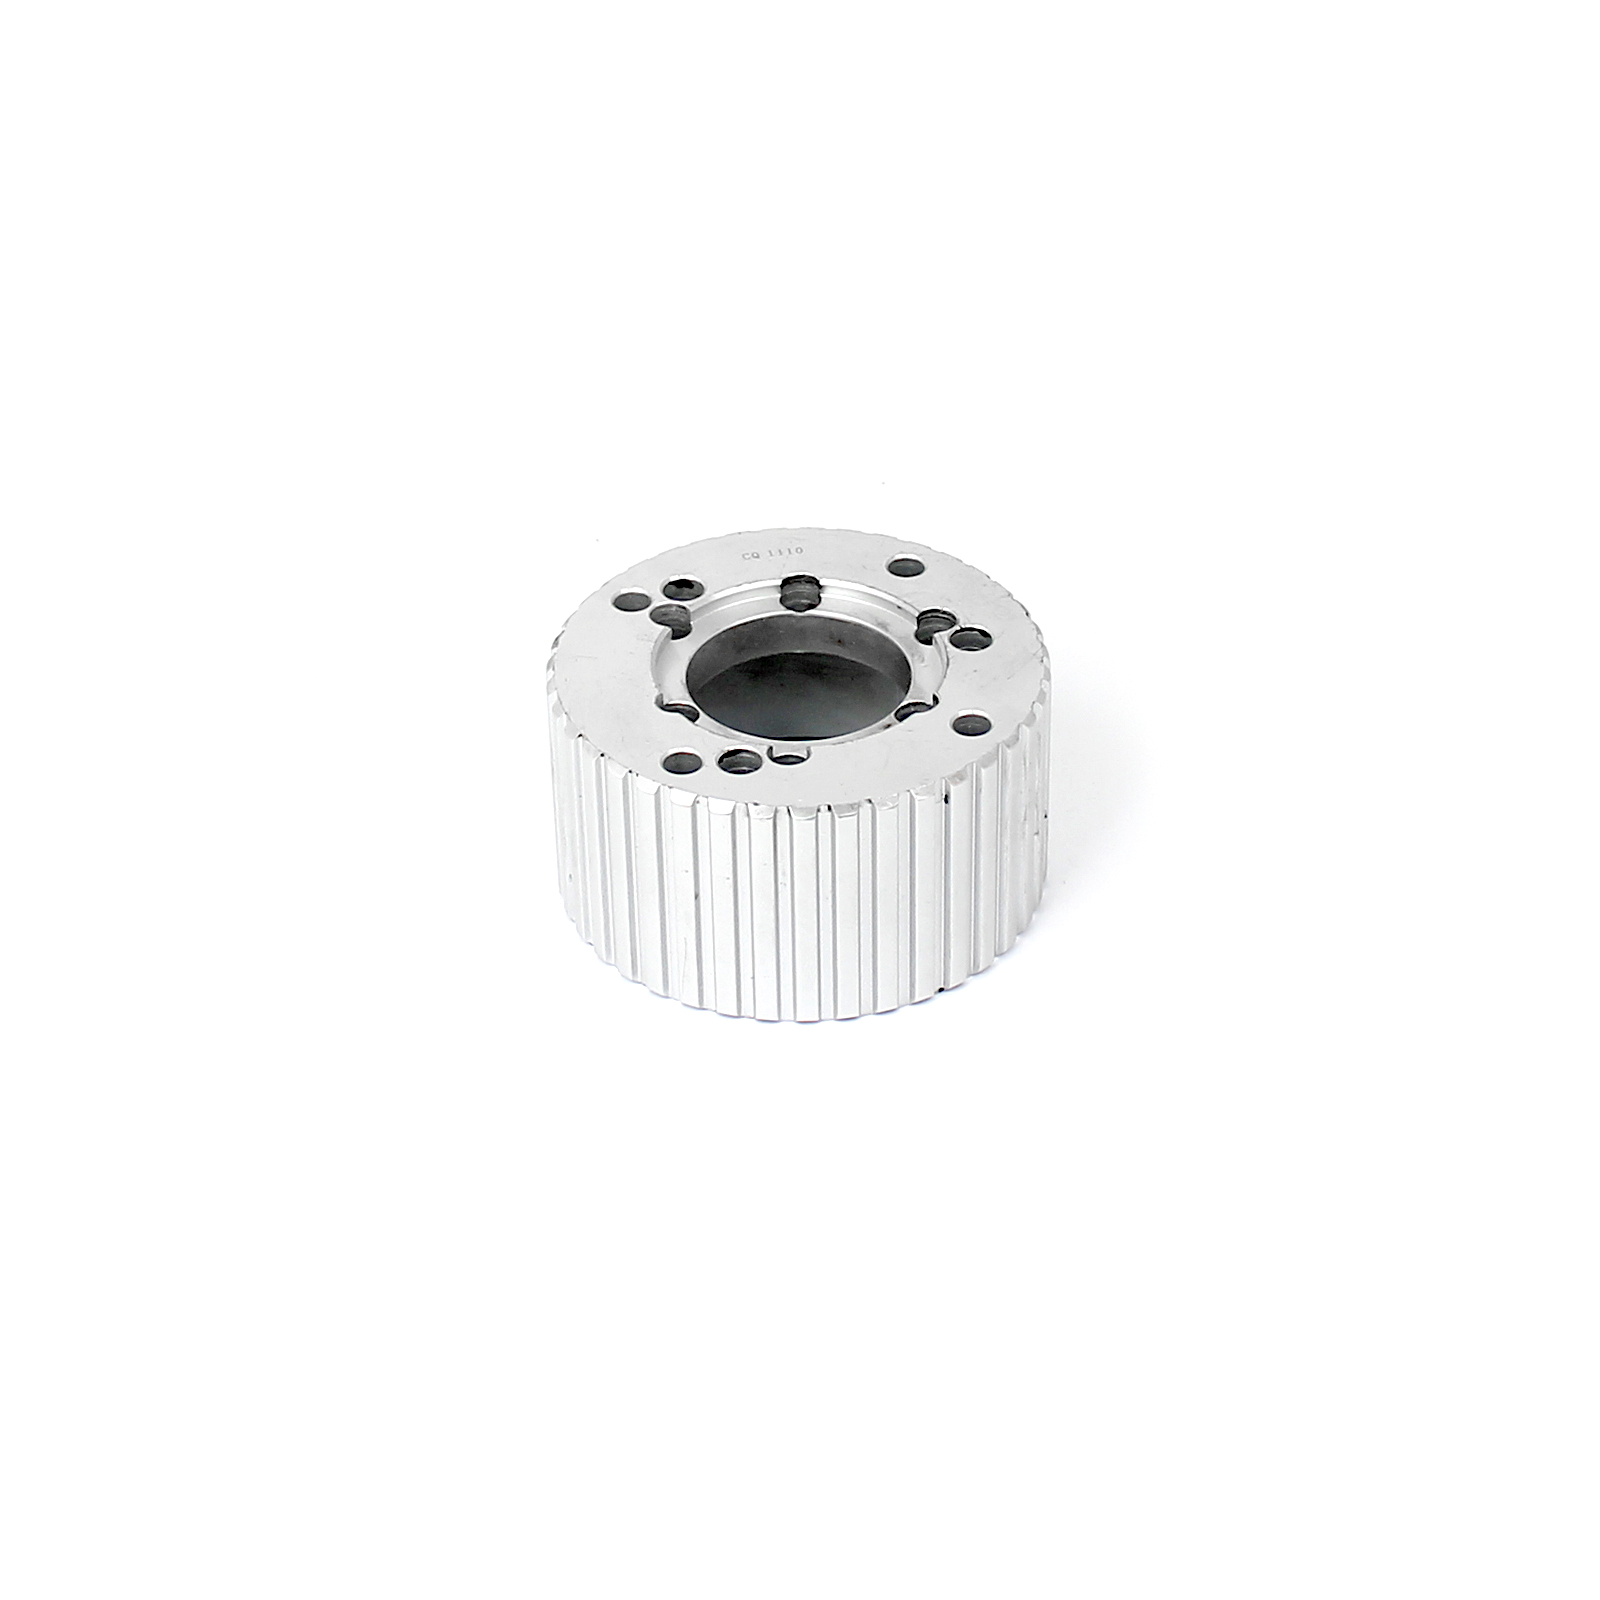 Aluminum Gilmer Drive Short Crank Pulley Only